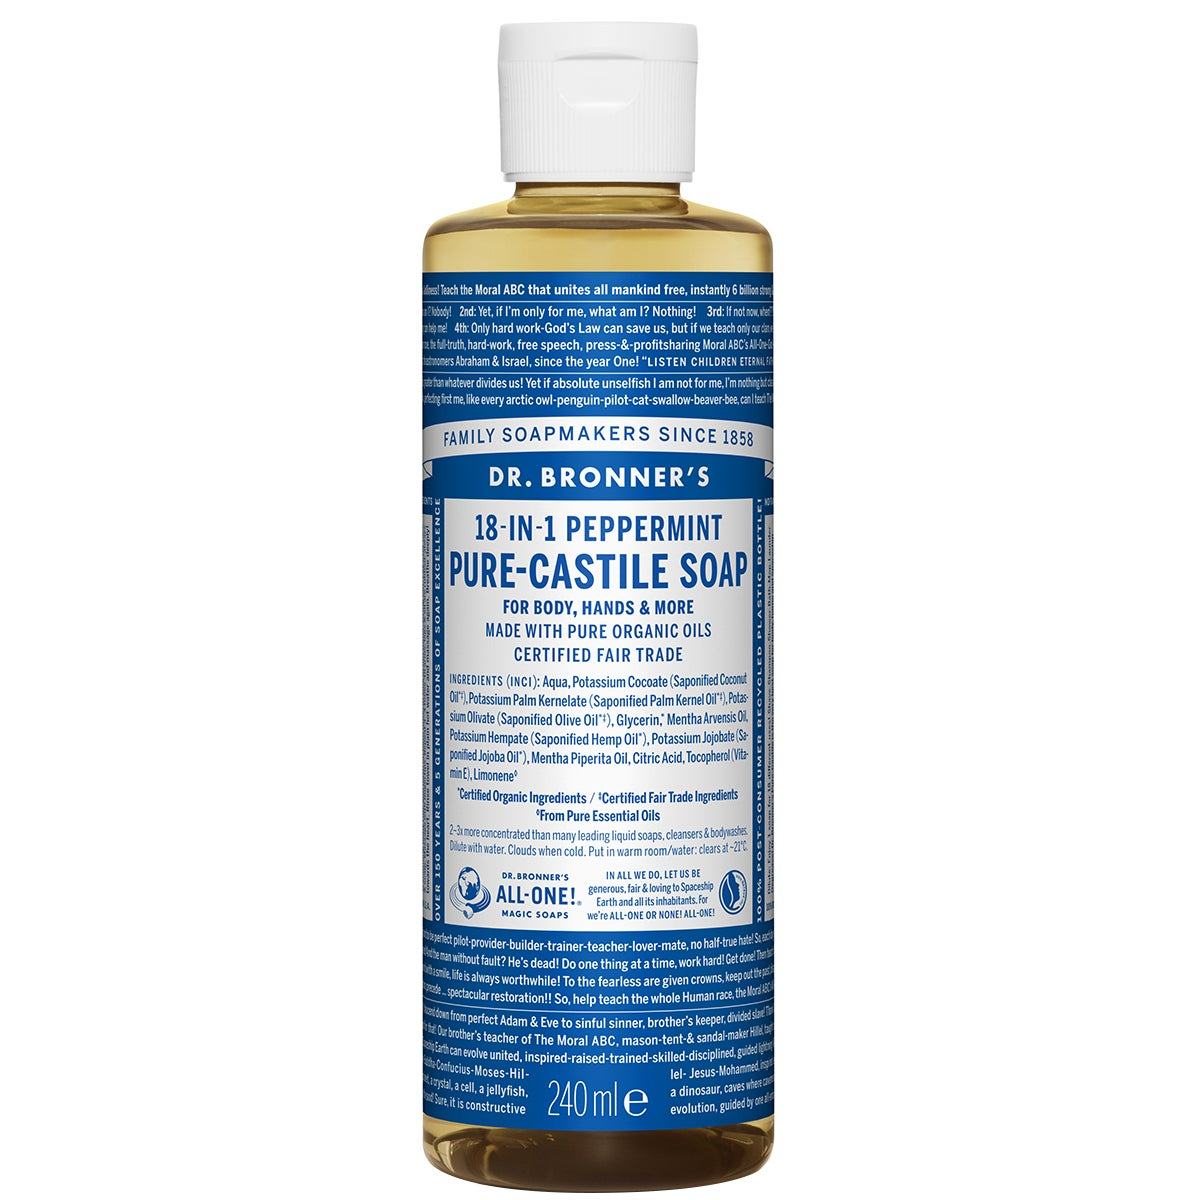 Dr. Bronner's Magic Soaps Peppermint